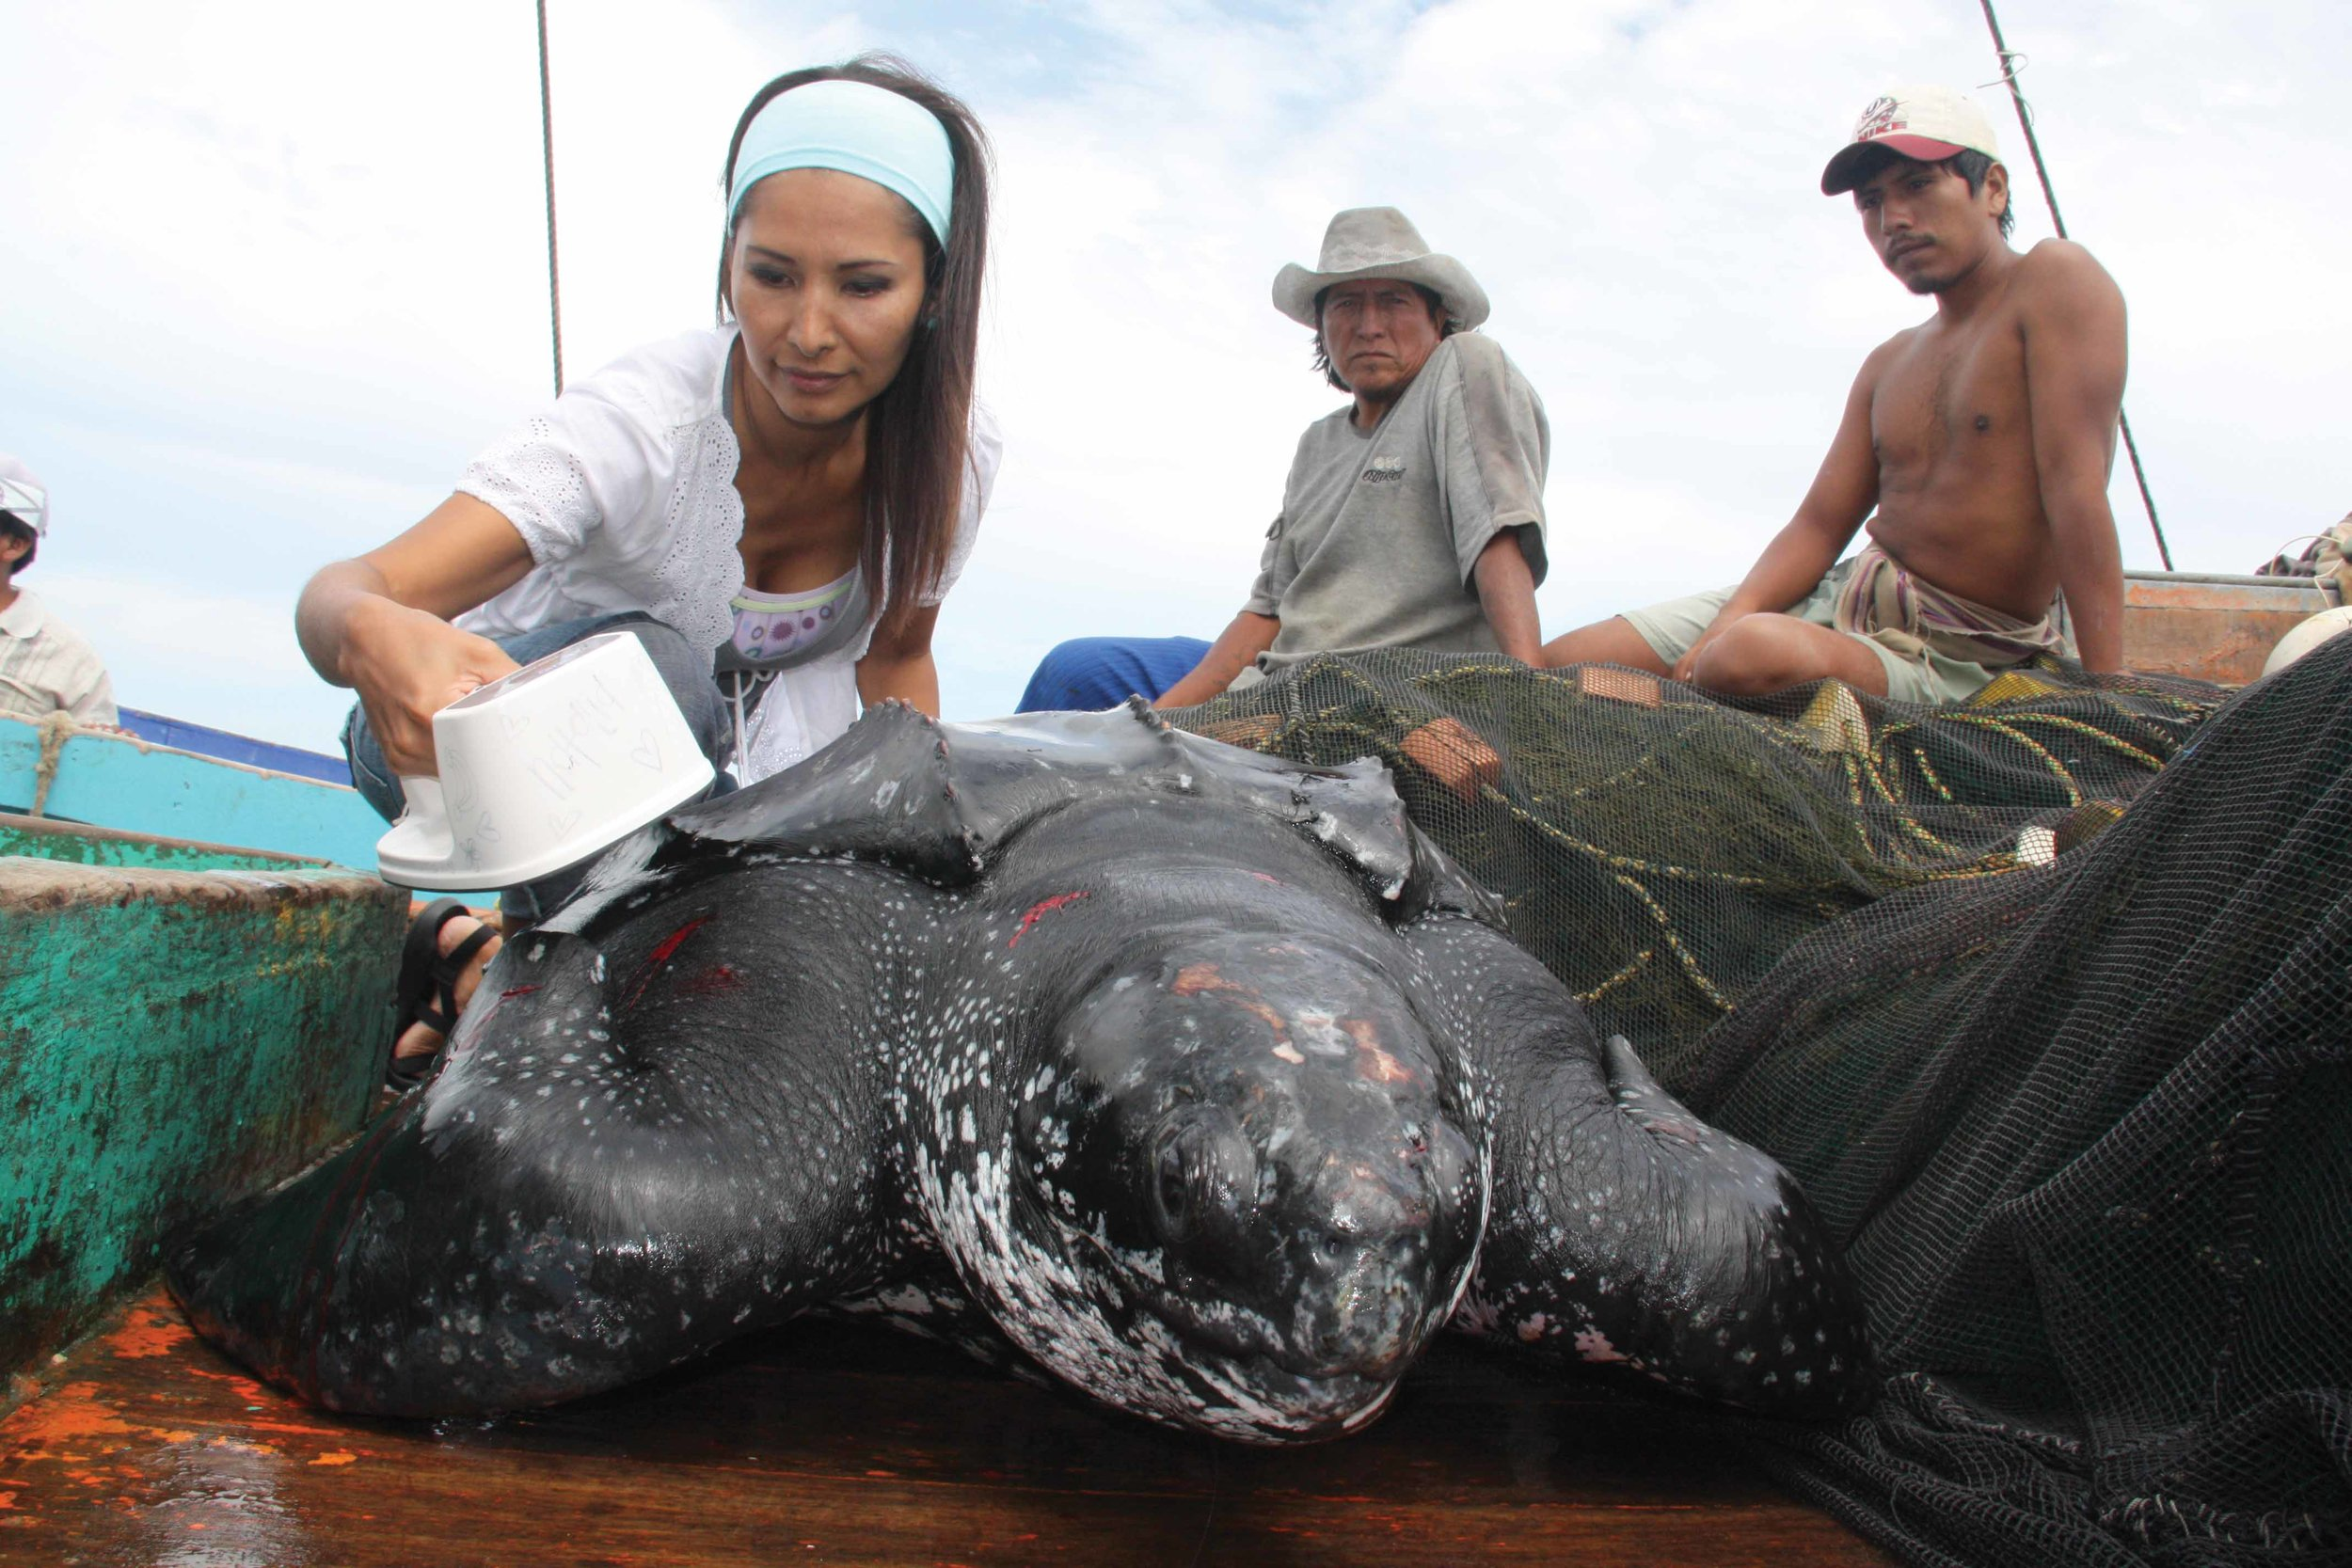 Off the coast of Peru, Joanna Alfaro of ProDelphinus scans a leatherback turtle in search of an implanted microchip tag. © Jeffrey Mangel